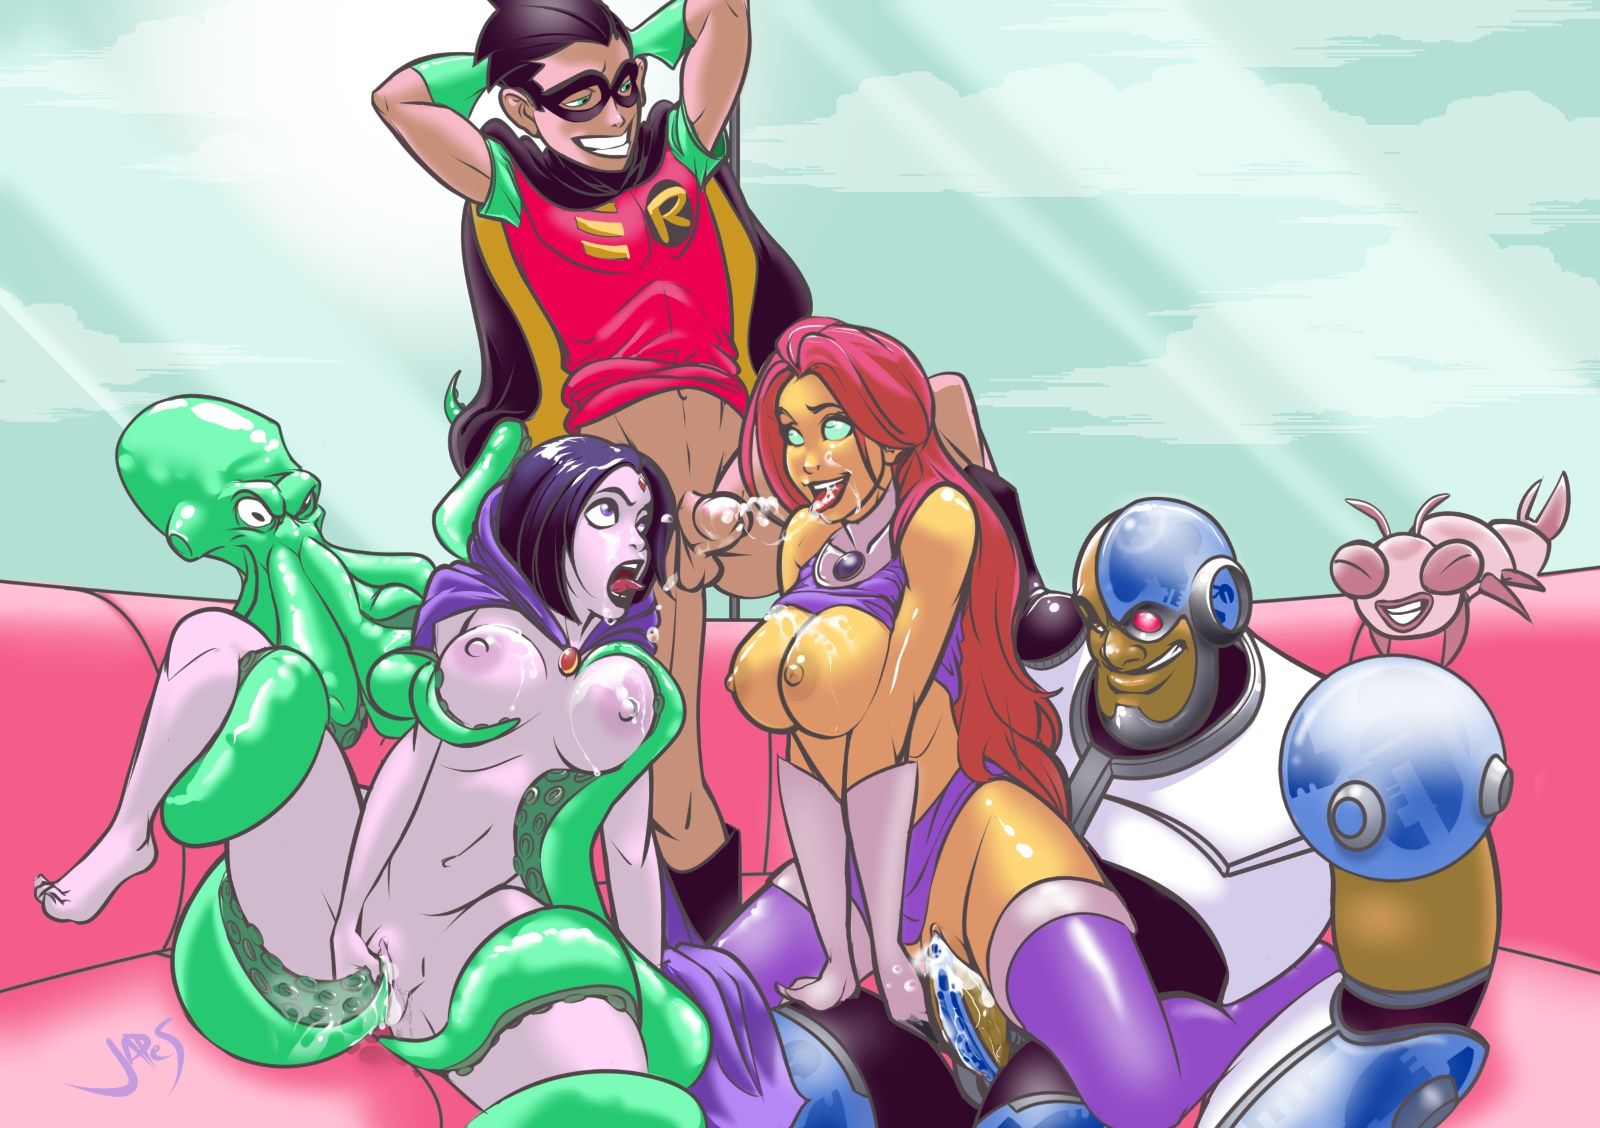 [Rule34] Titans Together! feat. Raven, Starfire, Robin, Cyborg, and Beast Boy (japes) [Teen Titans]